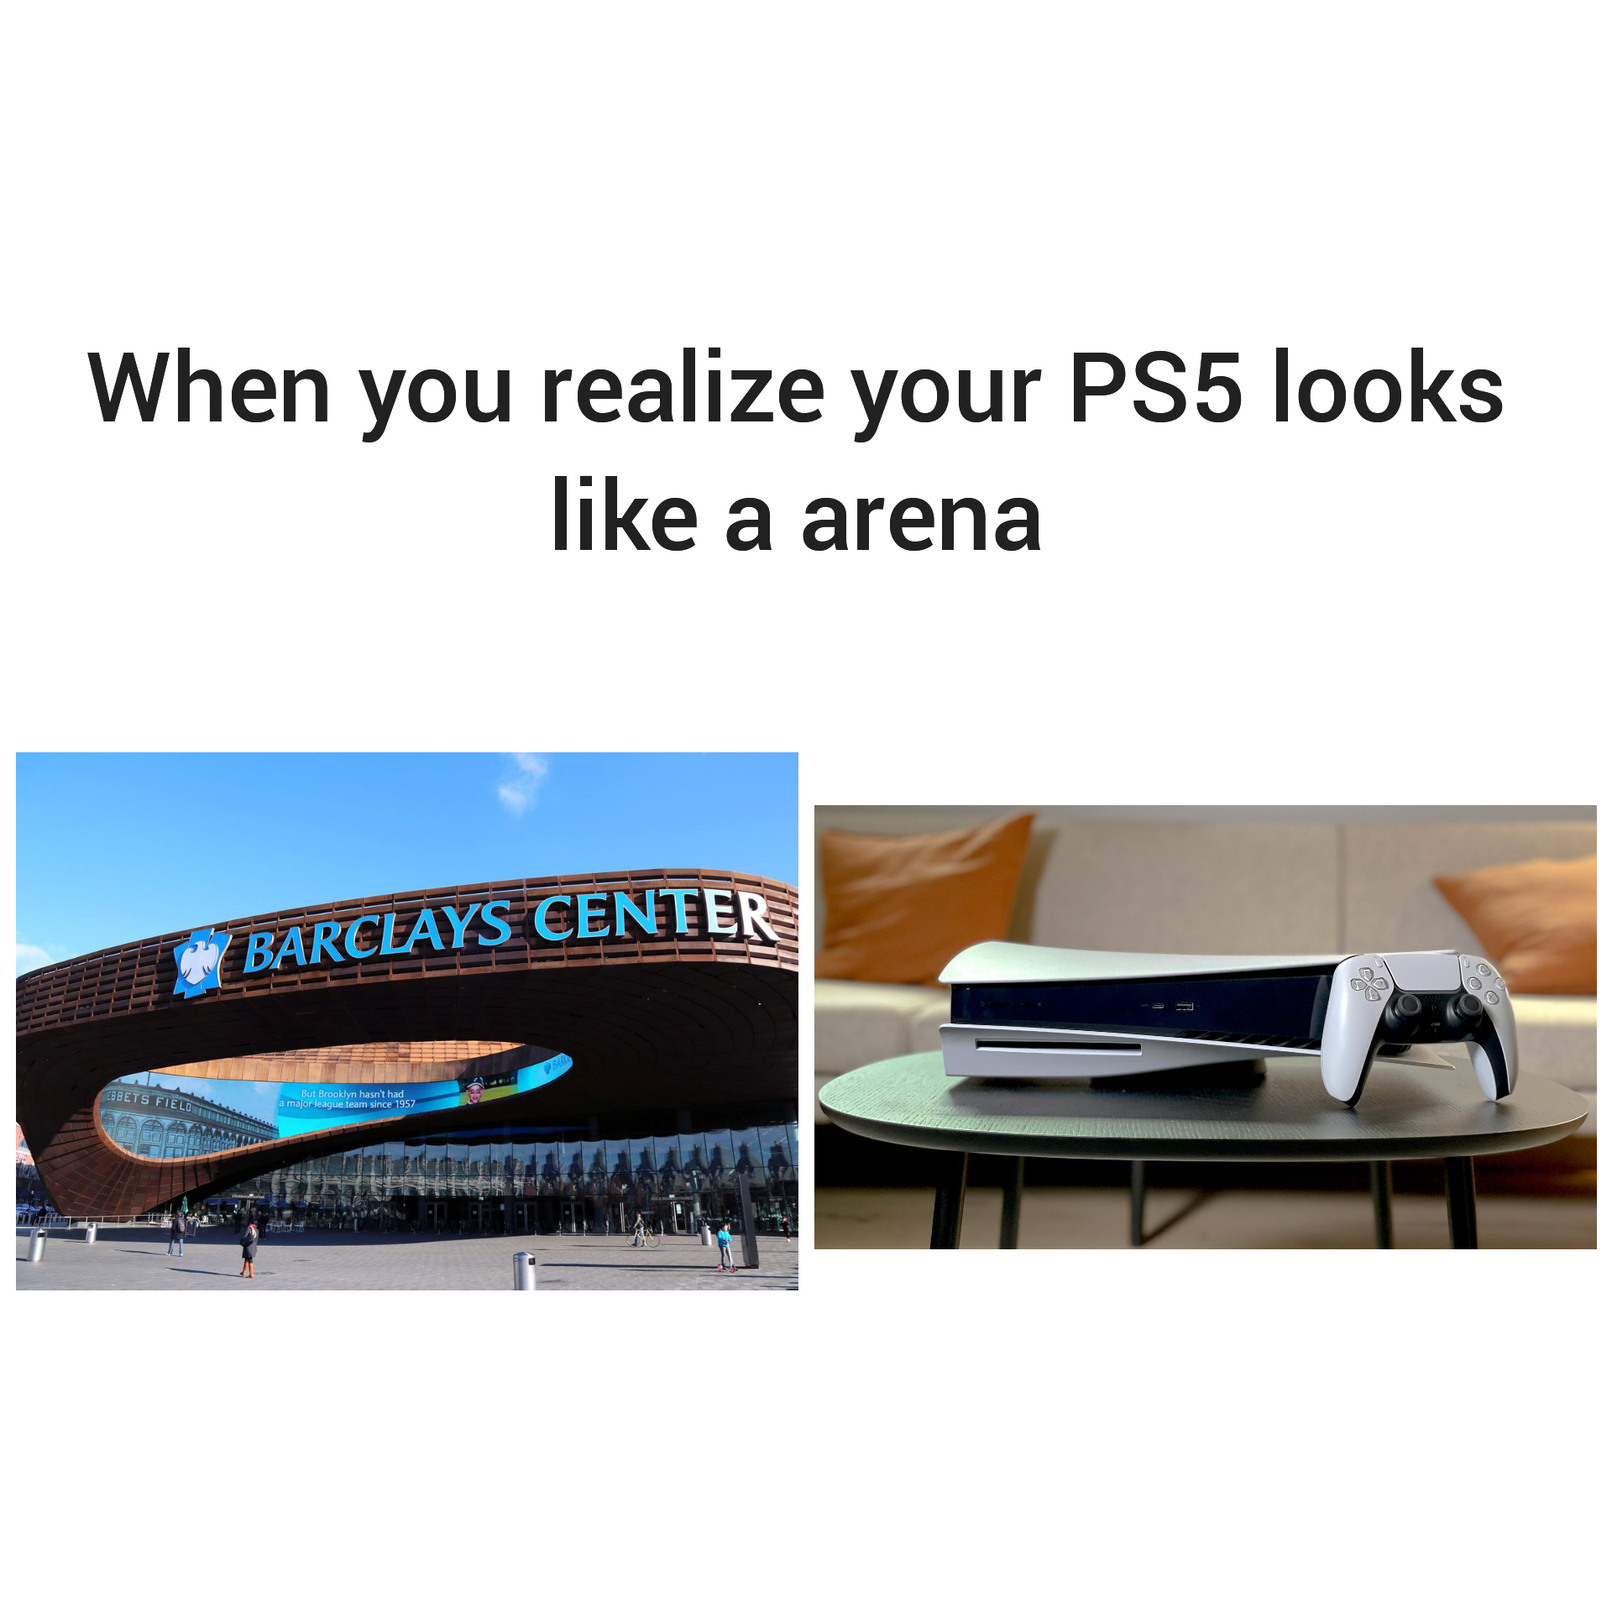 Your PS5 is an arena - meme